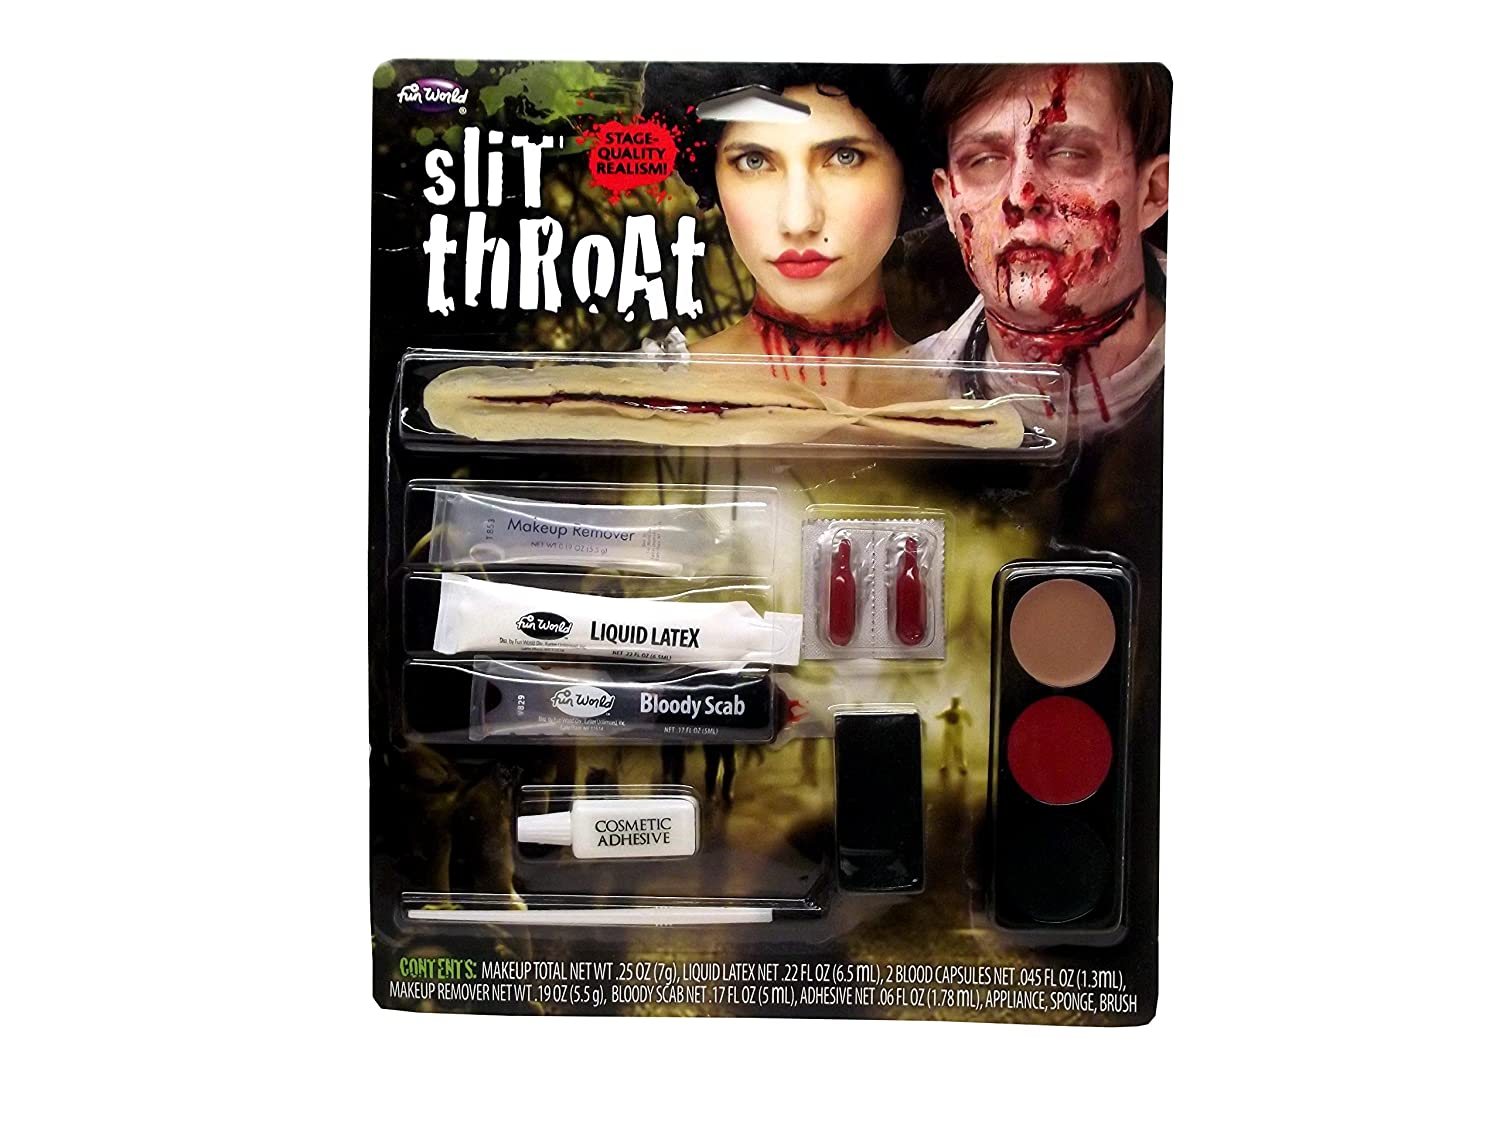 Slit Throat Makeup Kit Costume Appliance F